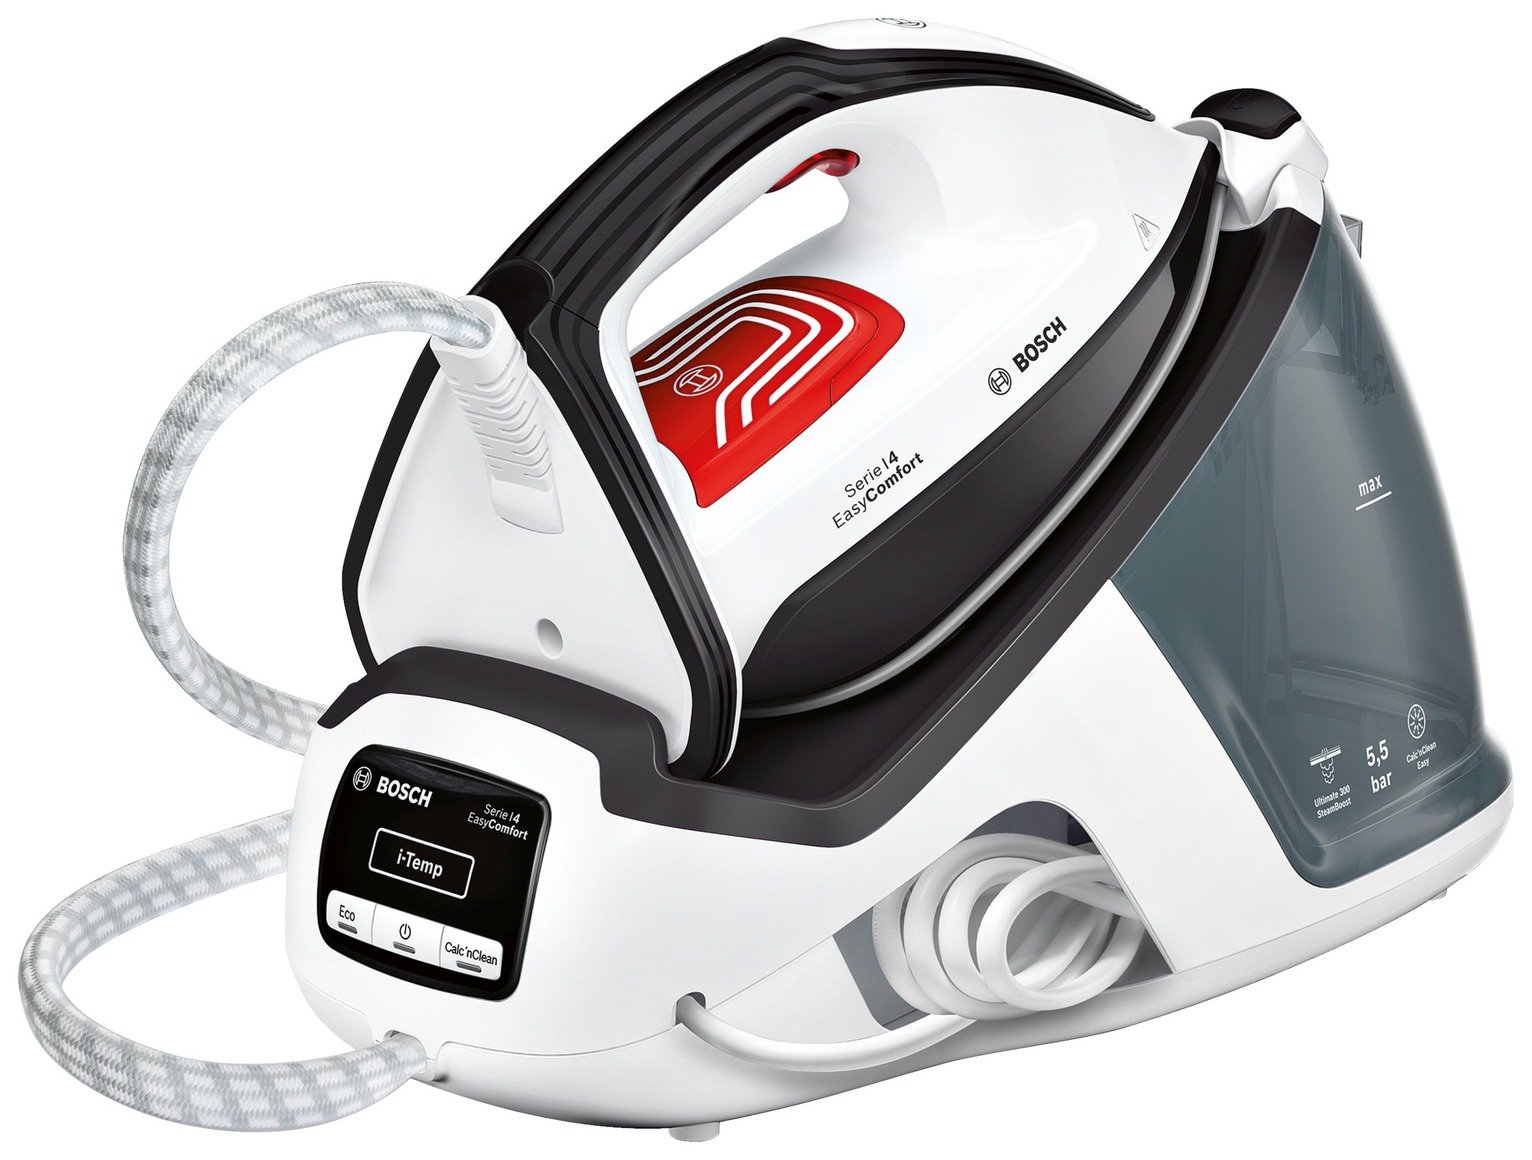 Bosch TDS4070GB Series 4 Steam Generator Iron